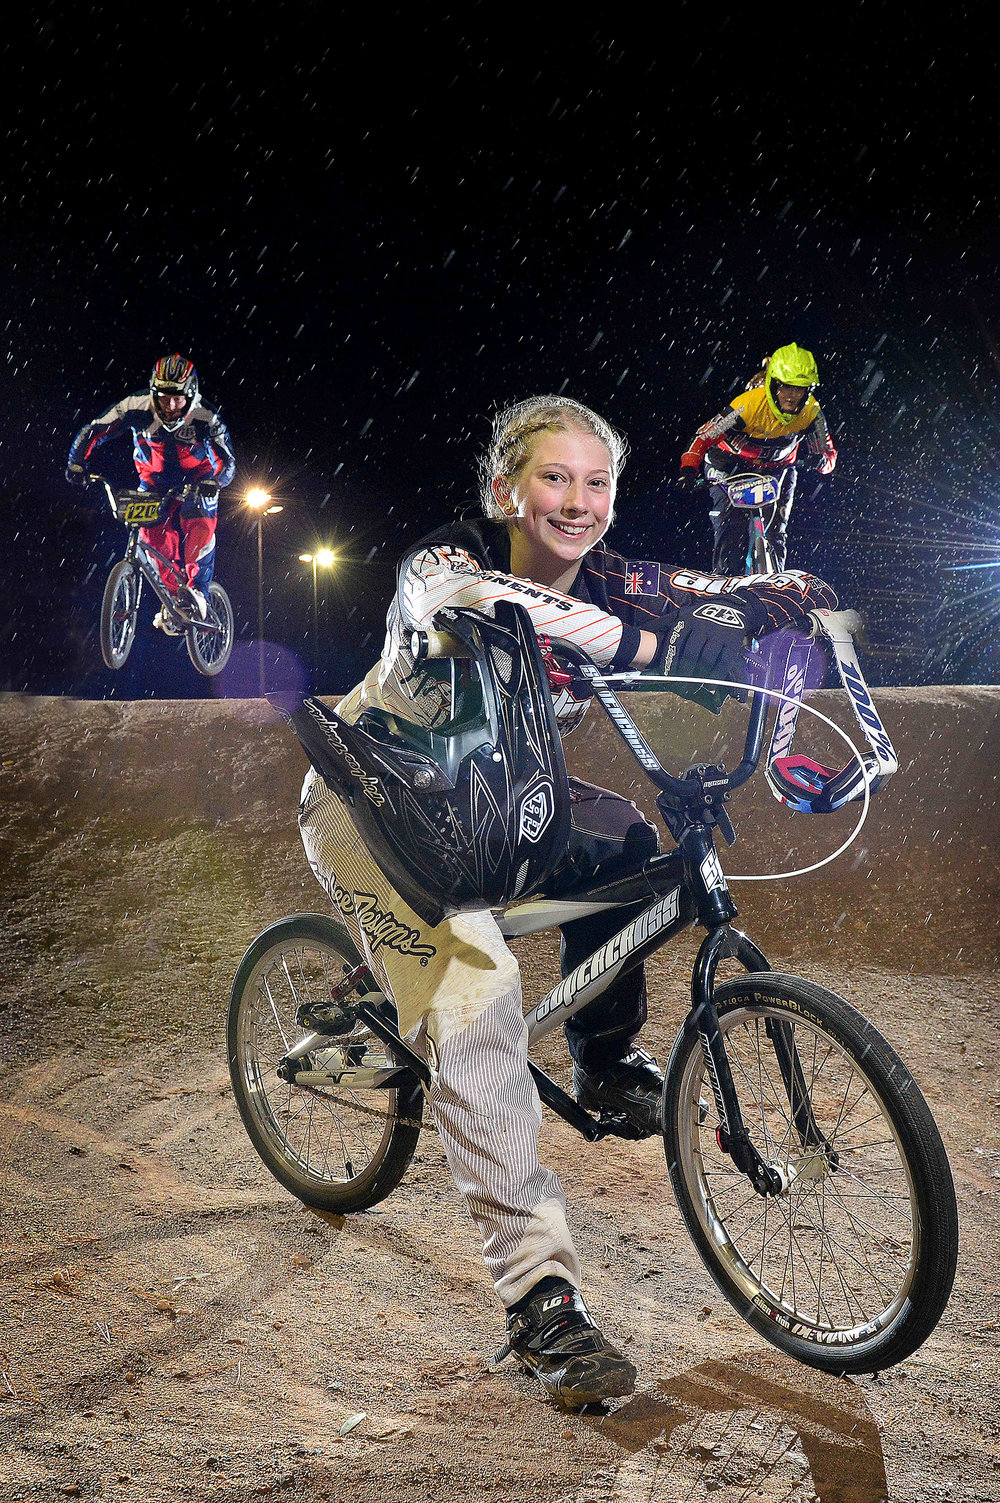 CHP_Export_138602585_BMX riders and level 1 trainee coaches Jacob Empson 17 Maddie Guyers 18 %26 Charl.jpg